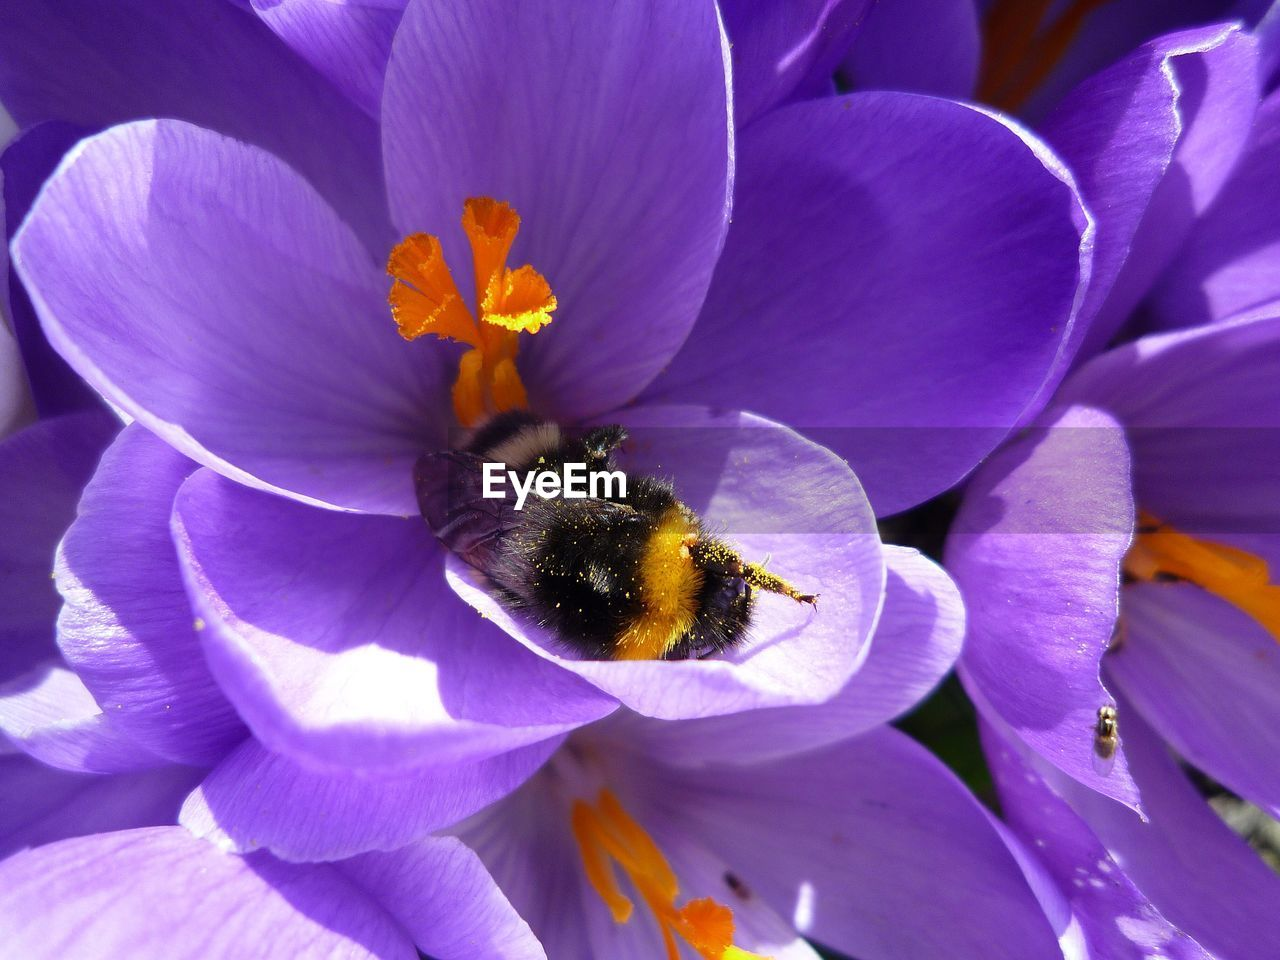 flowering plant, flower, petal, fragility, vulnerability, freshness, flower head, growth, plant, close-up, beauty in nature, inflorescence, bee, nature, invertebrate, animal, animals in the wild, purple, animal themes, animal wildlife, no people, pollen, pollination, crocus, bumblebee